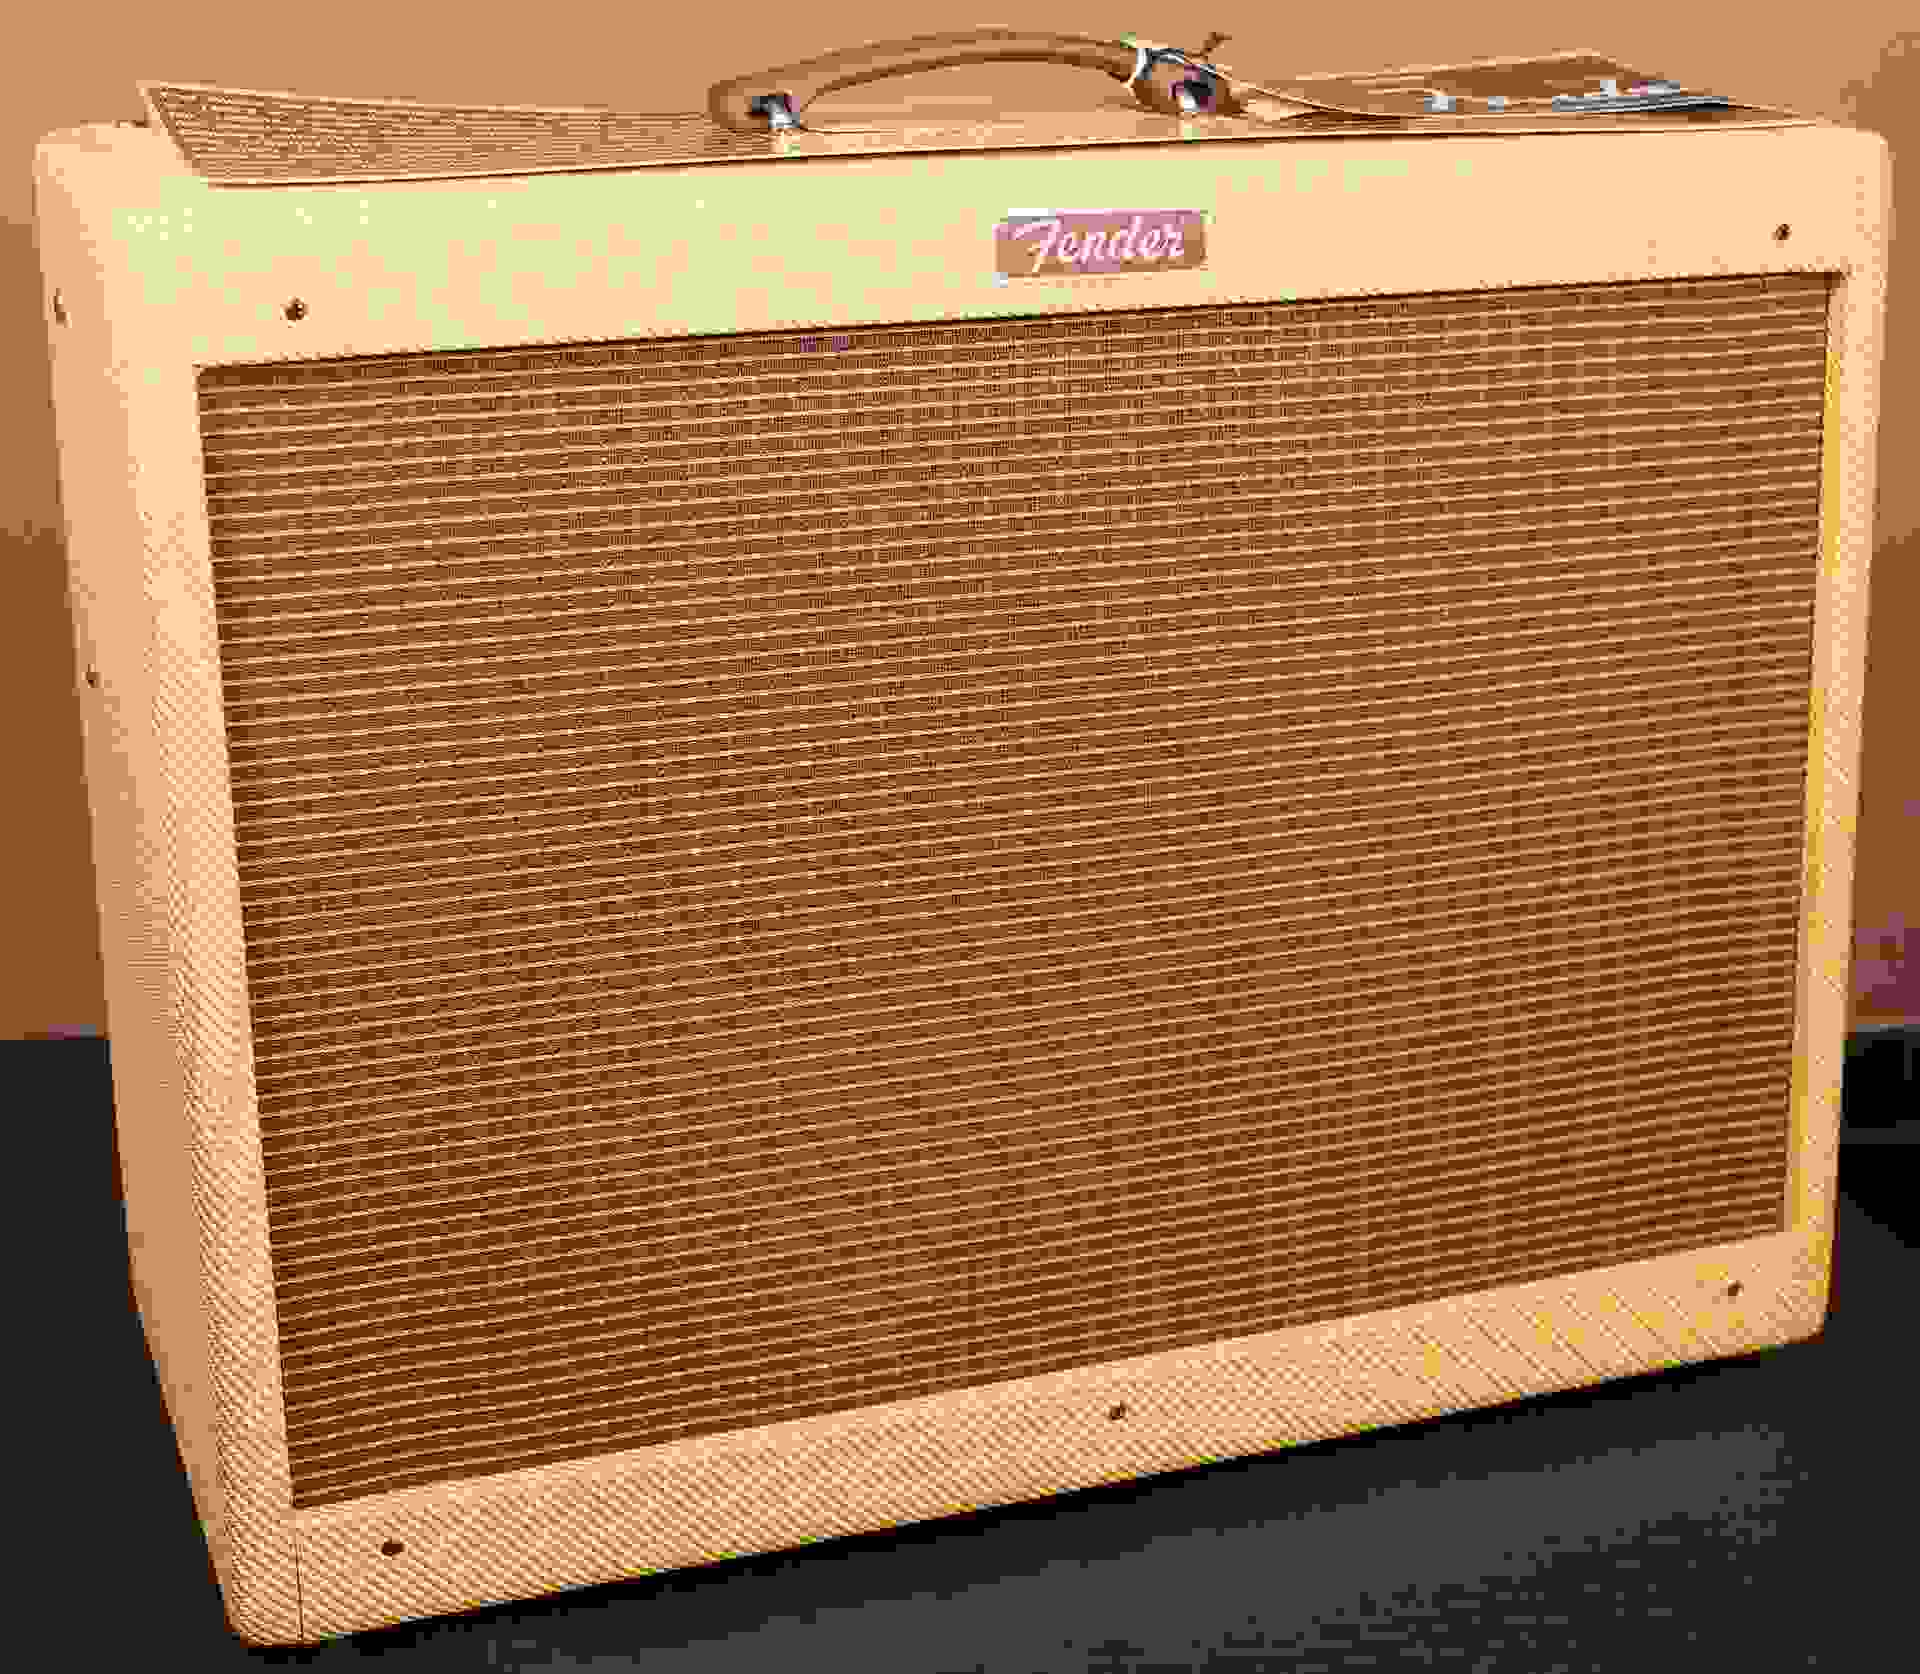 fender blues deluxe front.JPG